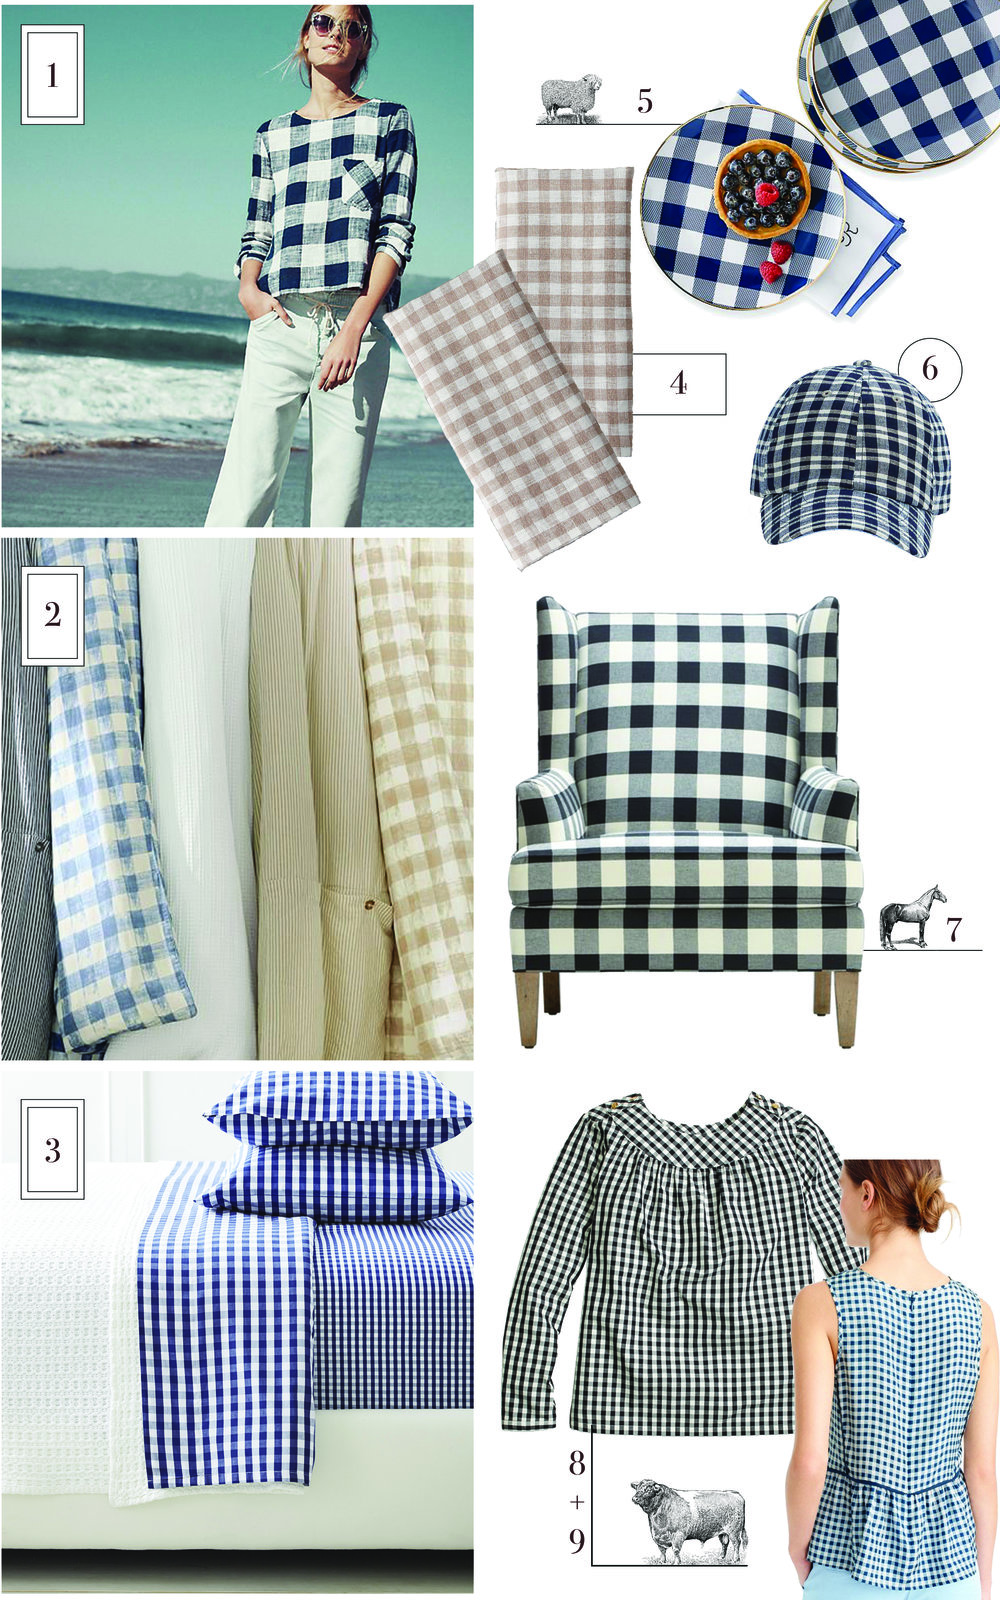 Add gingham to your decor this spring | boxwoodavenue.com